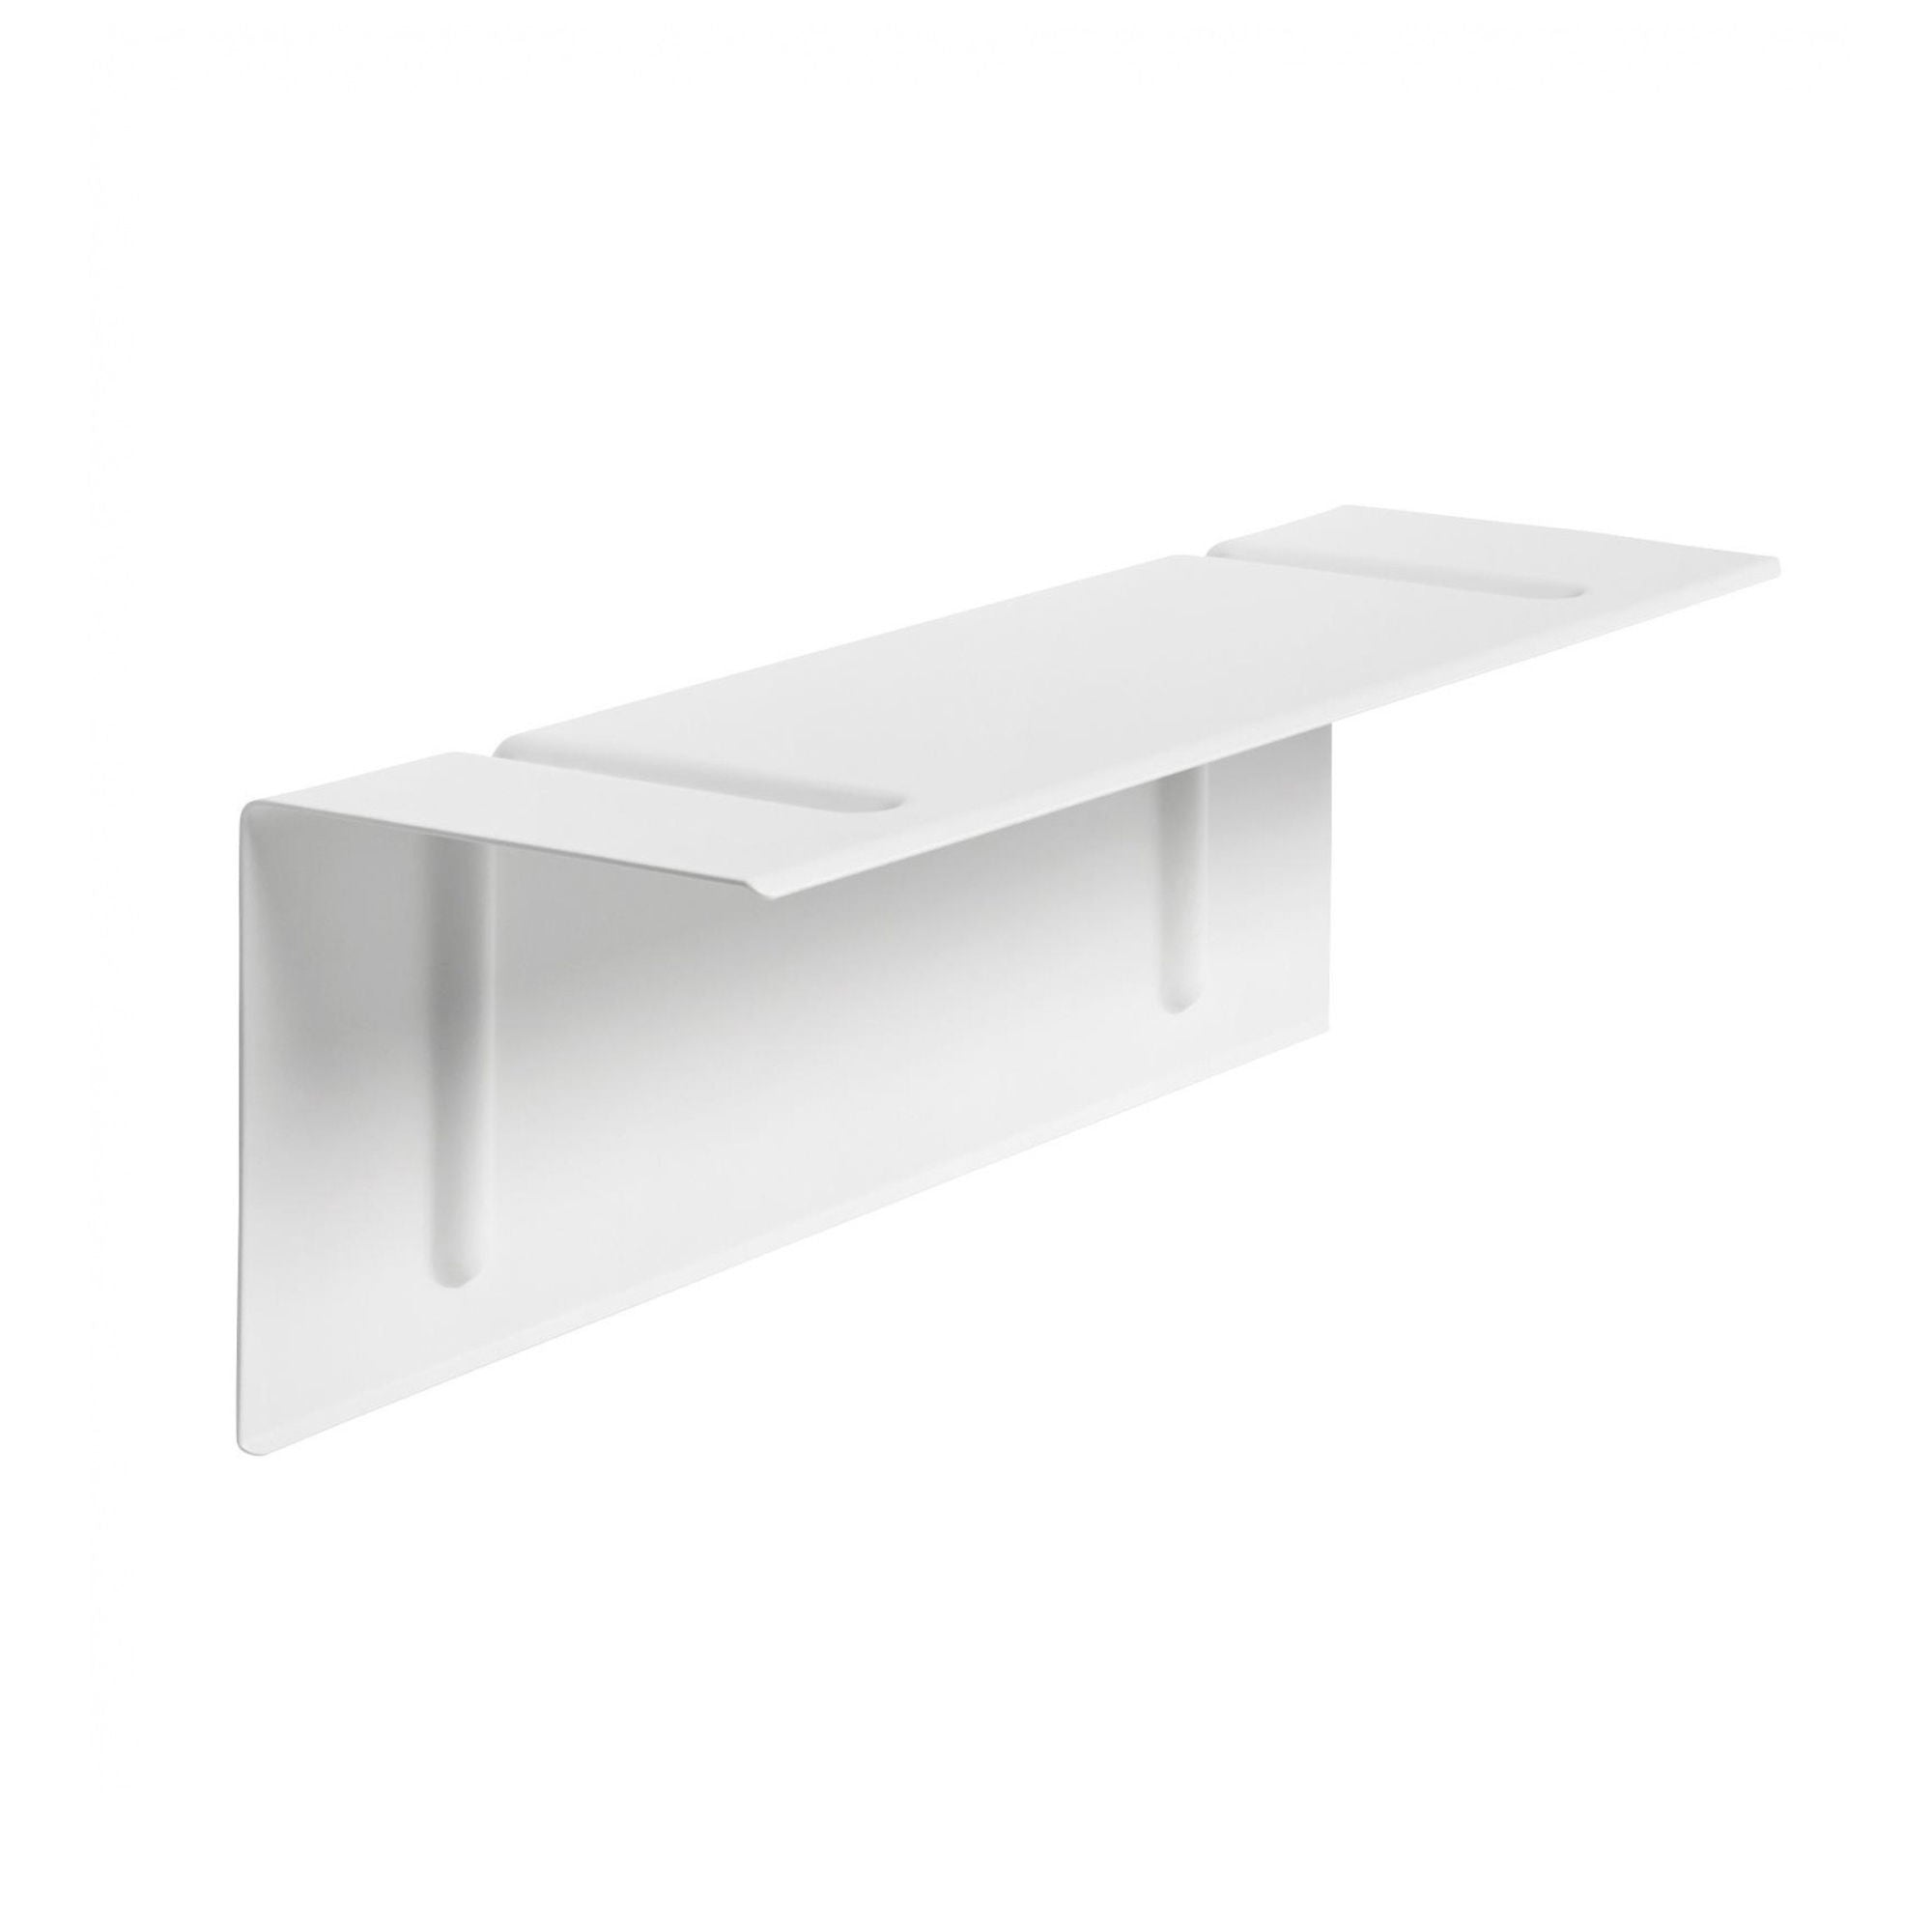 Hay Brackets Incl. Wall Shelf L60 , White